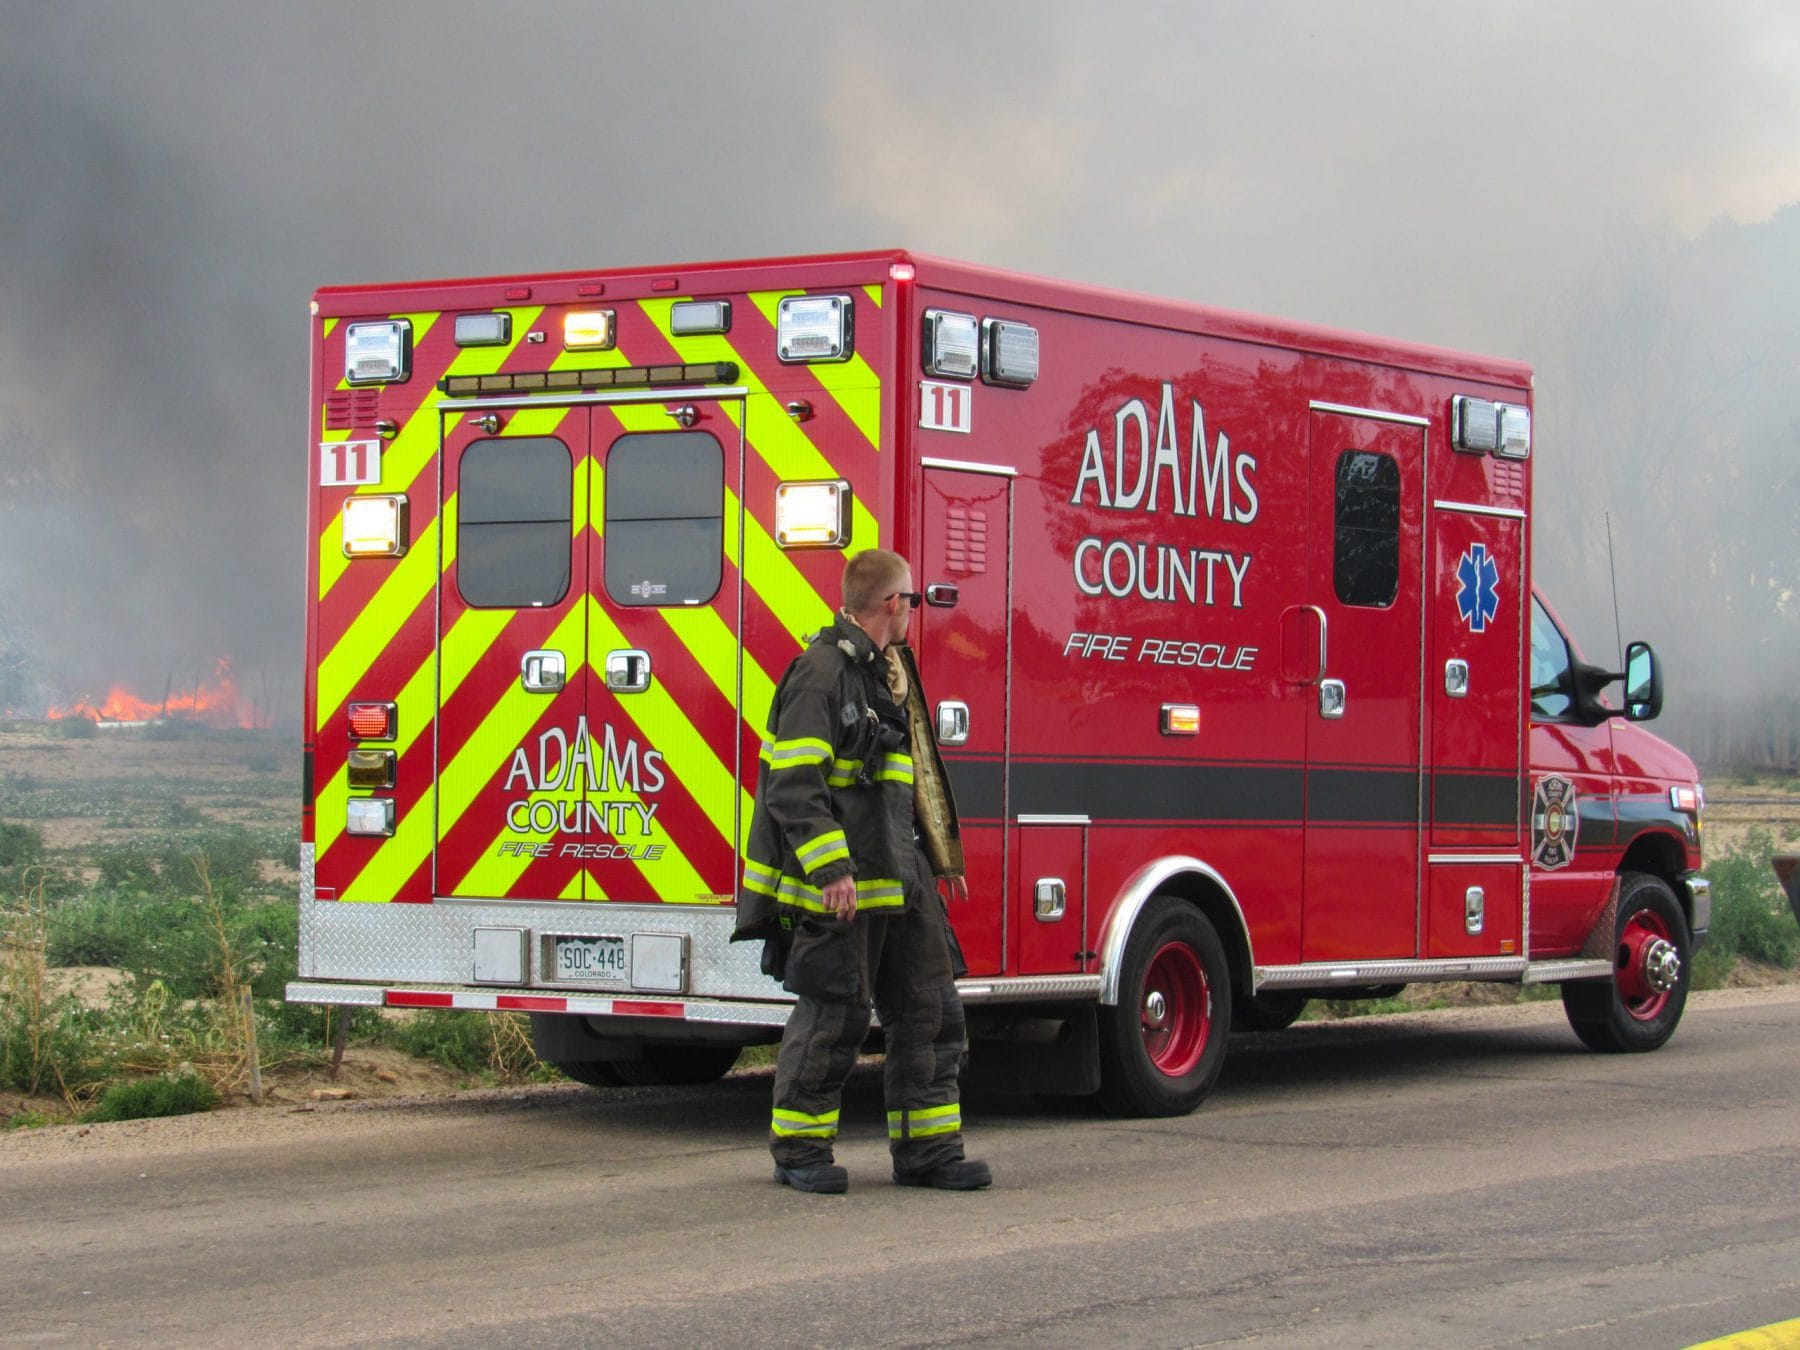 Fire Protection services from Adams County Fire Rescue